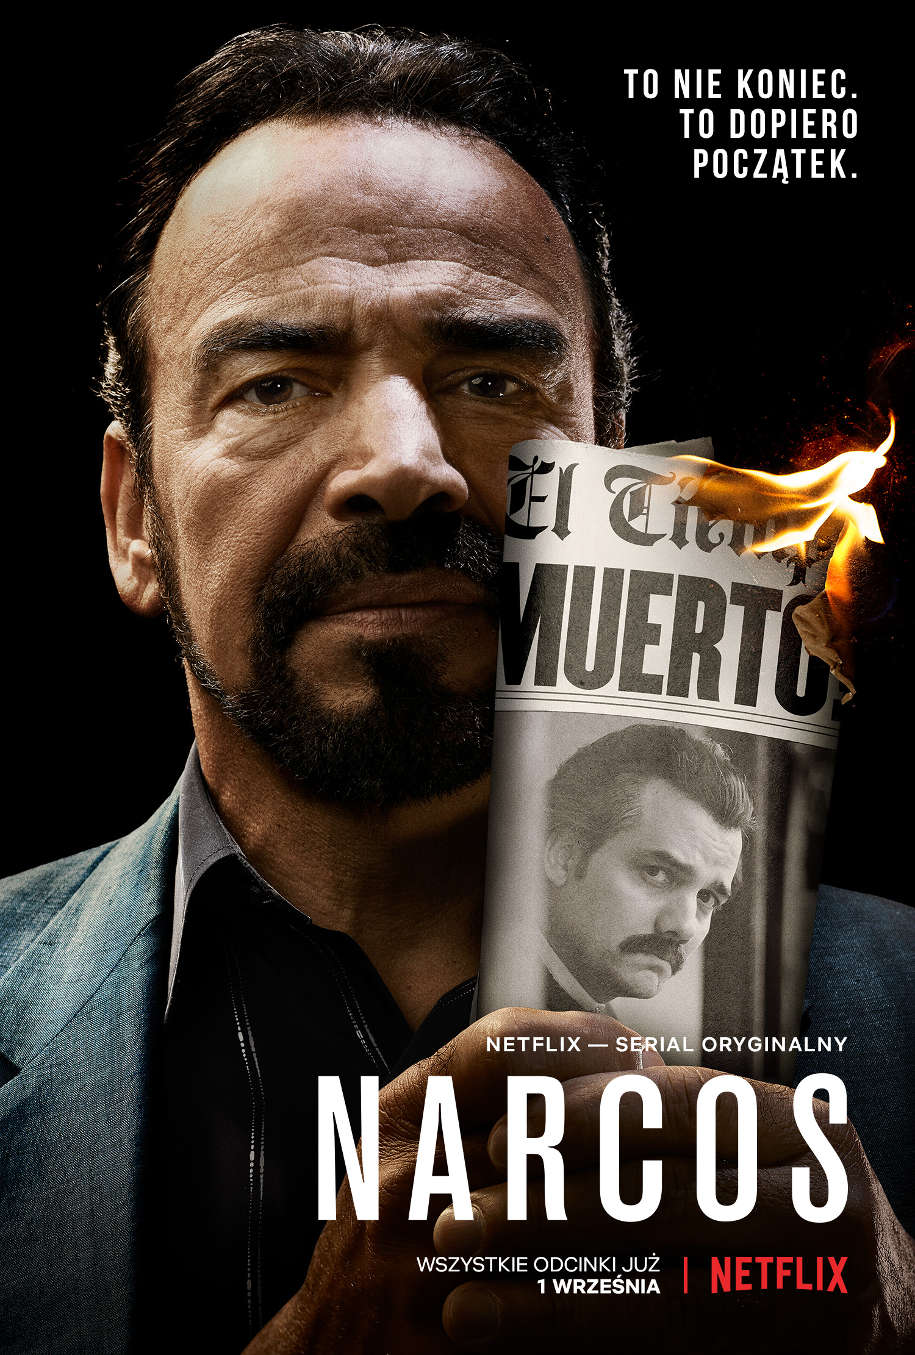 NARCOS_S3_Vertical_Newspaper_PRE_POL-1